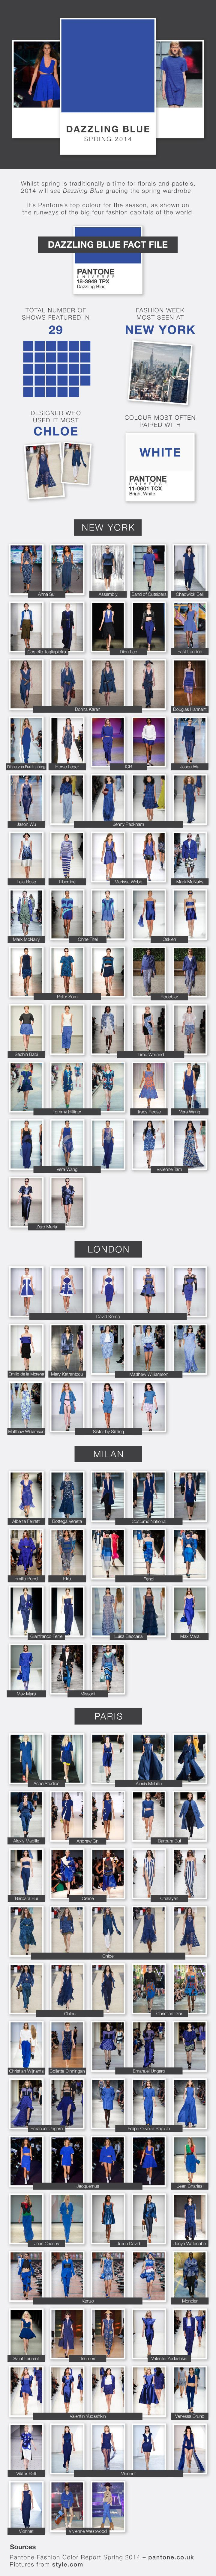 Dazzling Blue  The Pantone Color For Spring 2014 On The Runways (Infographic)